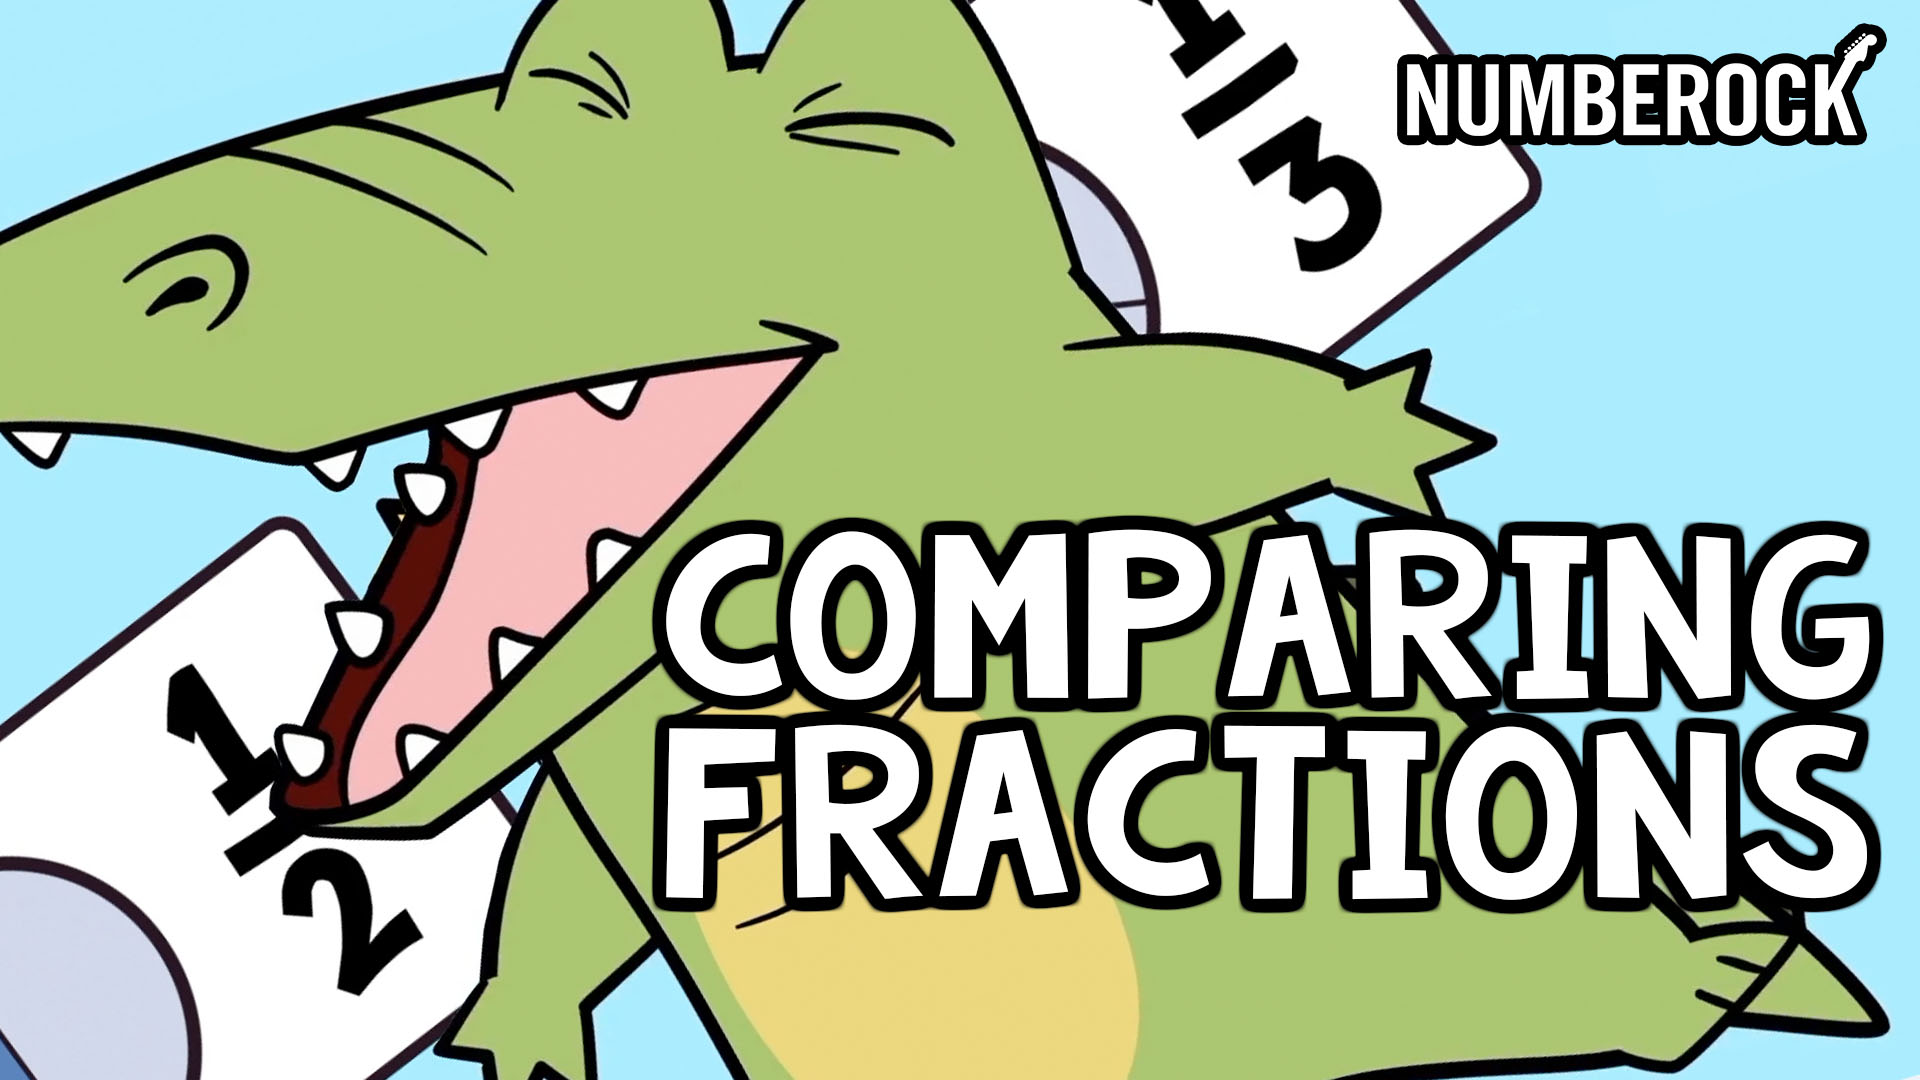 Comparing Fractions Song | Numberock Video with Worksheets and other 3rd Grade Fraction Activities